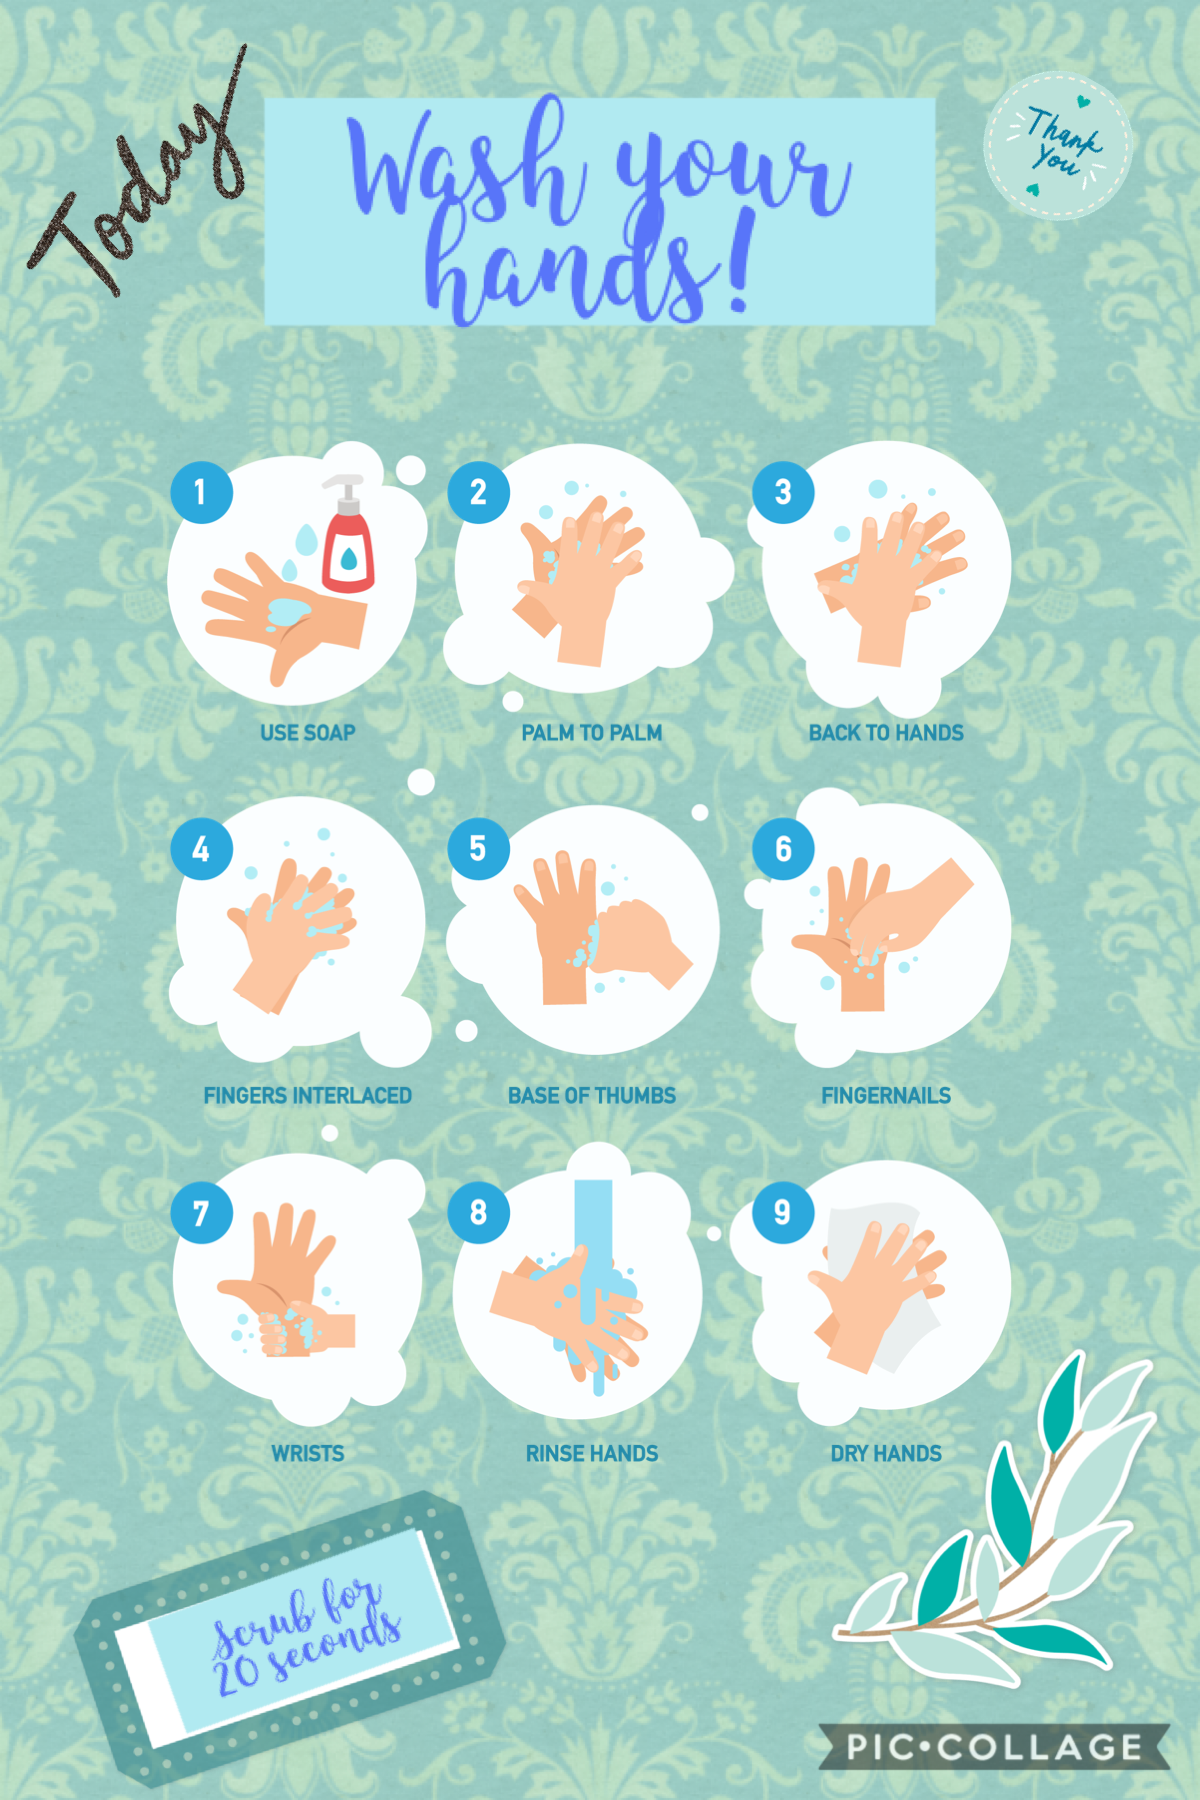 A reminder to wash your hands